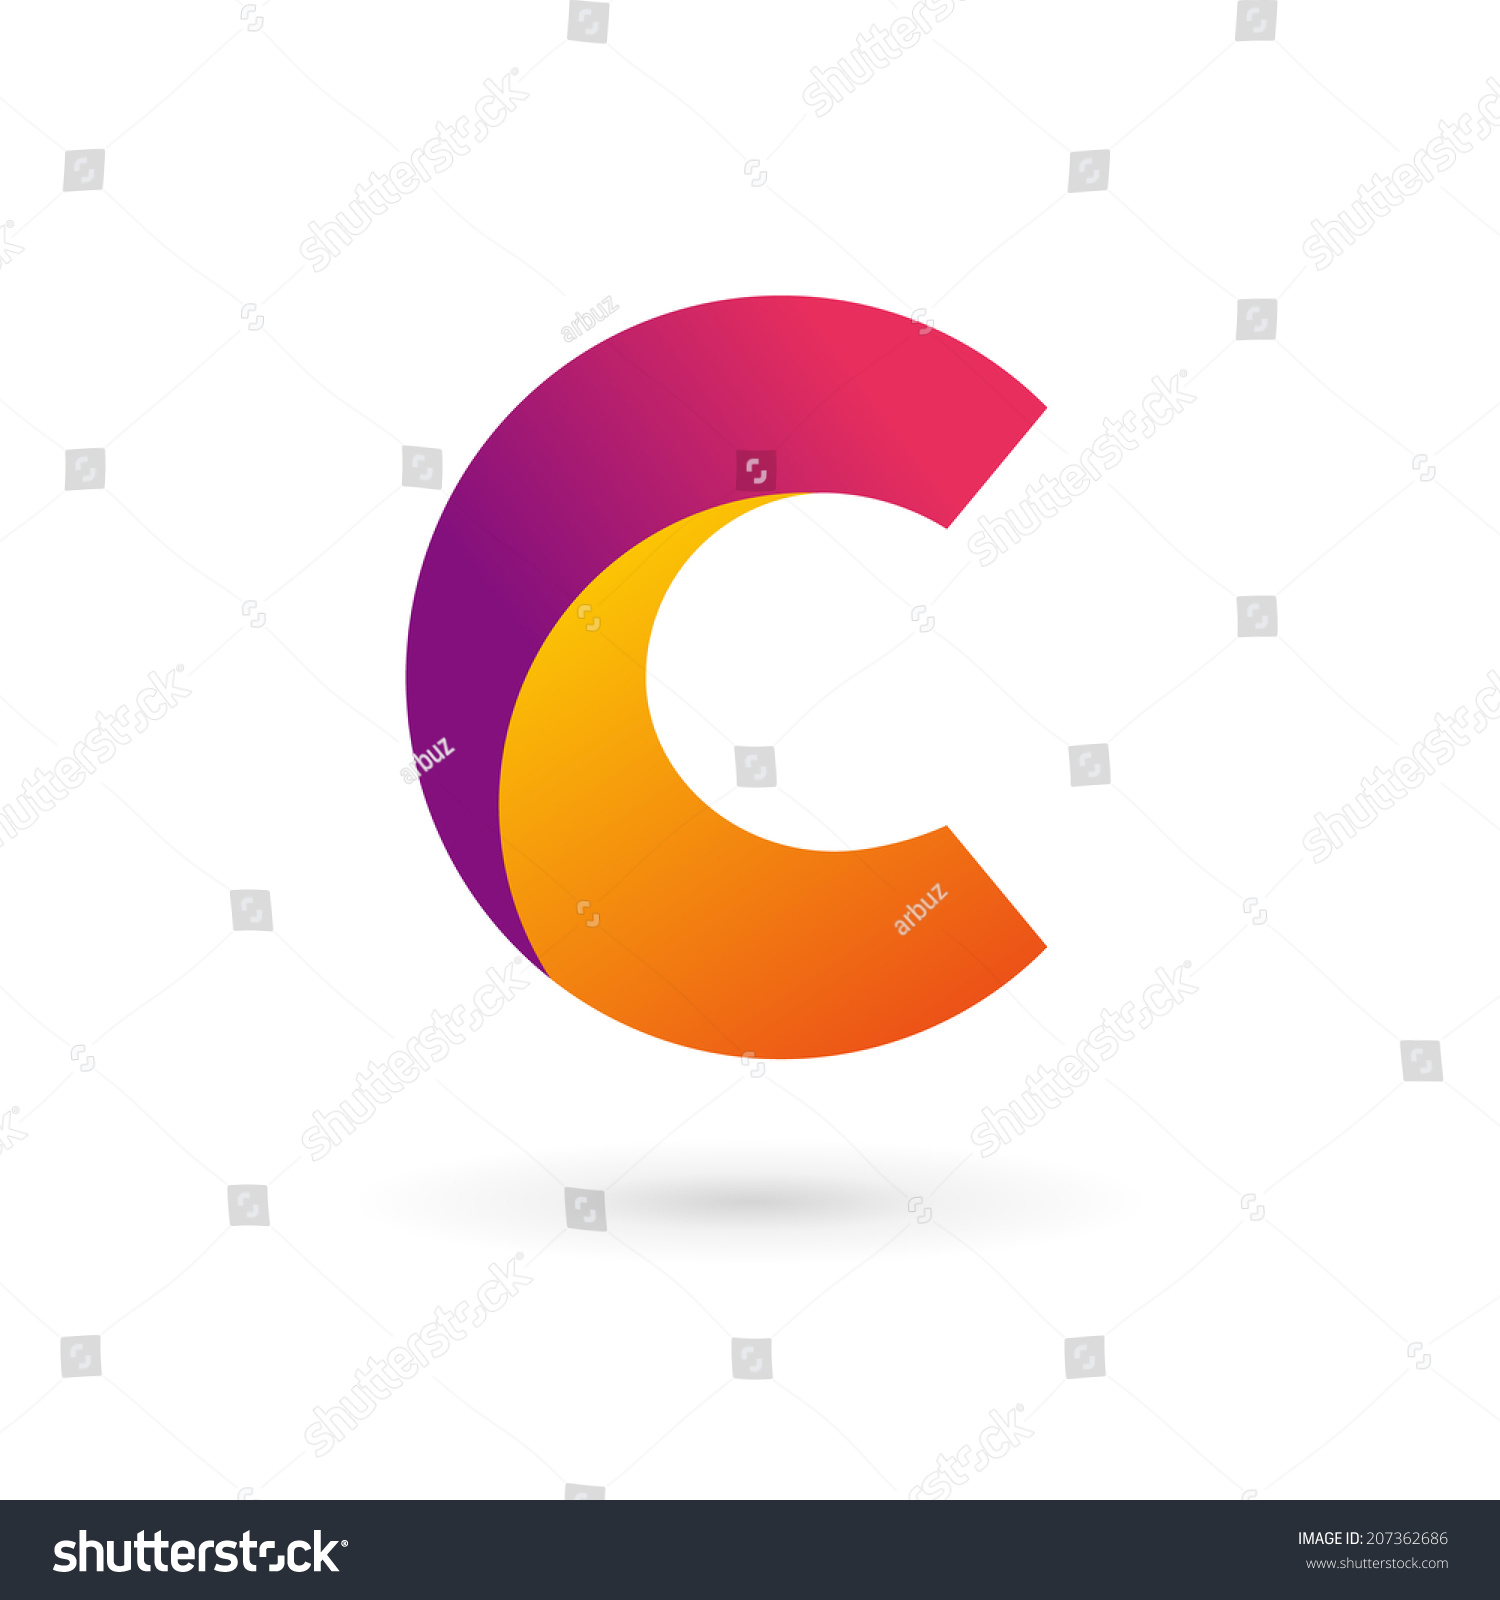 letter c logo icon design template stock vector 207362686 shutterstock. Black Bedroom Furniture Sets. Home Design Ideas